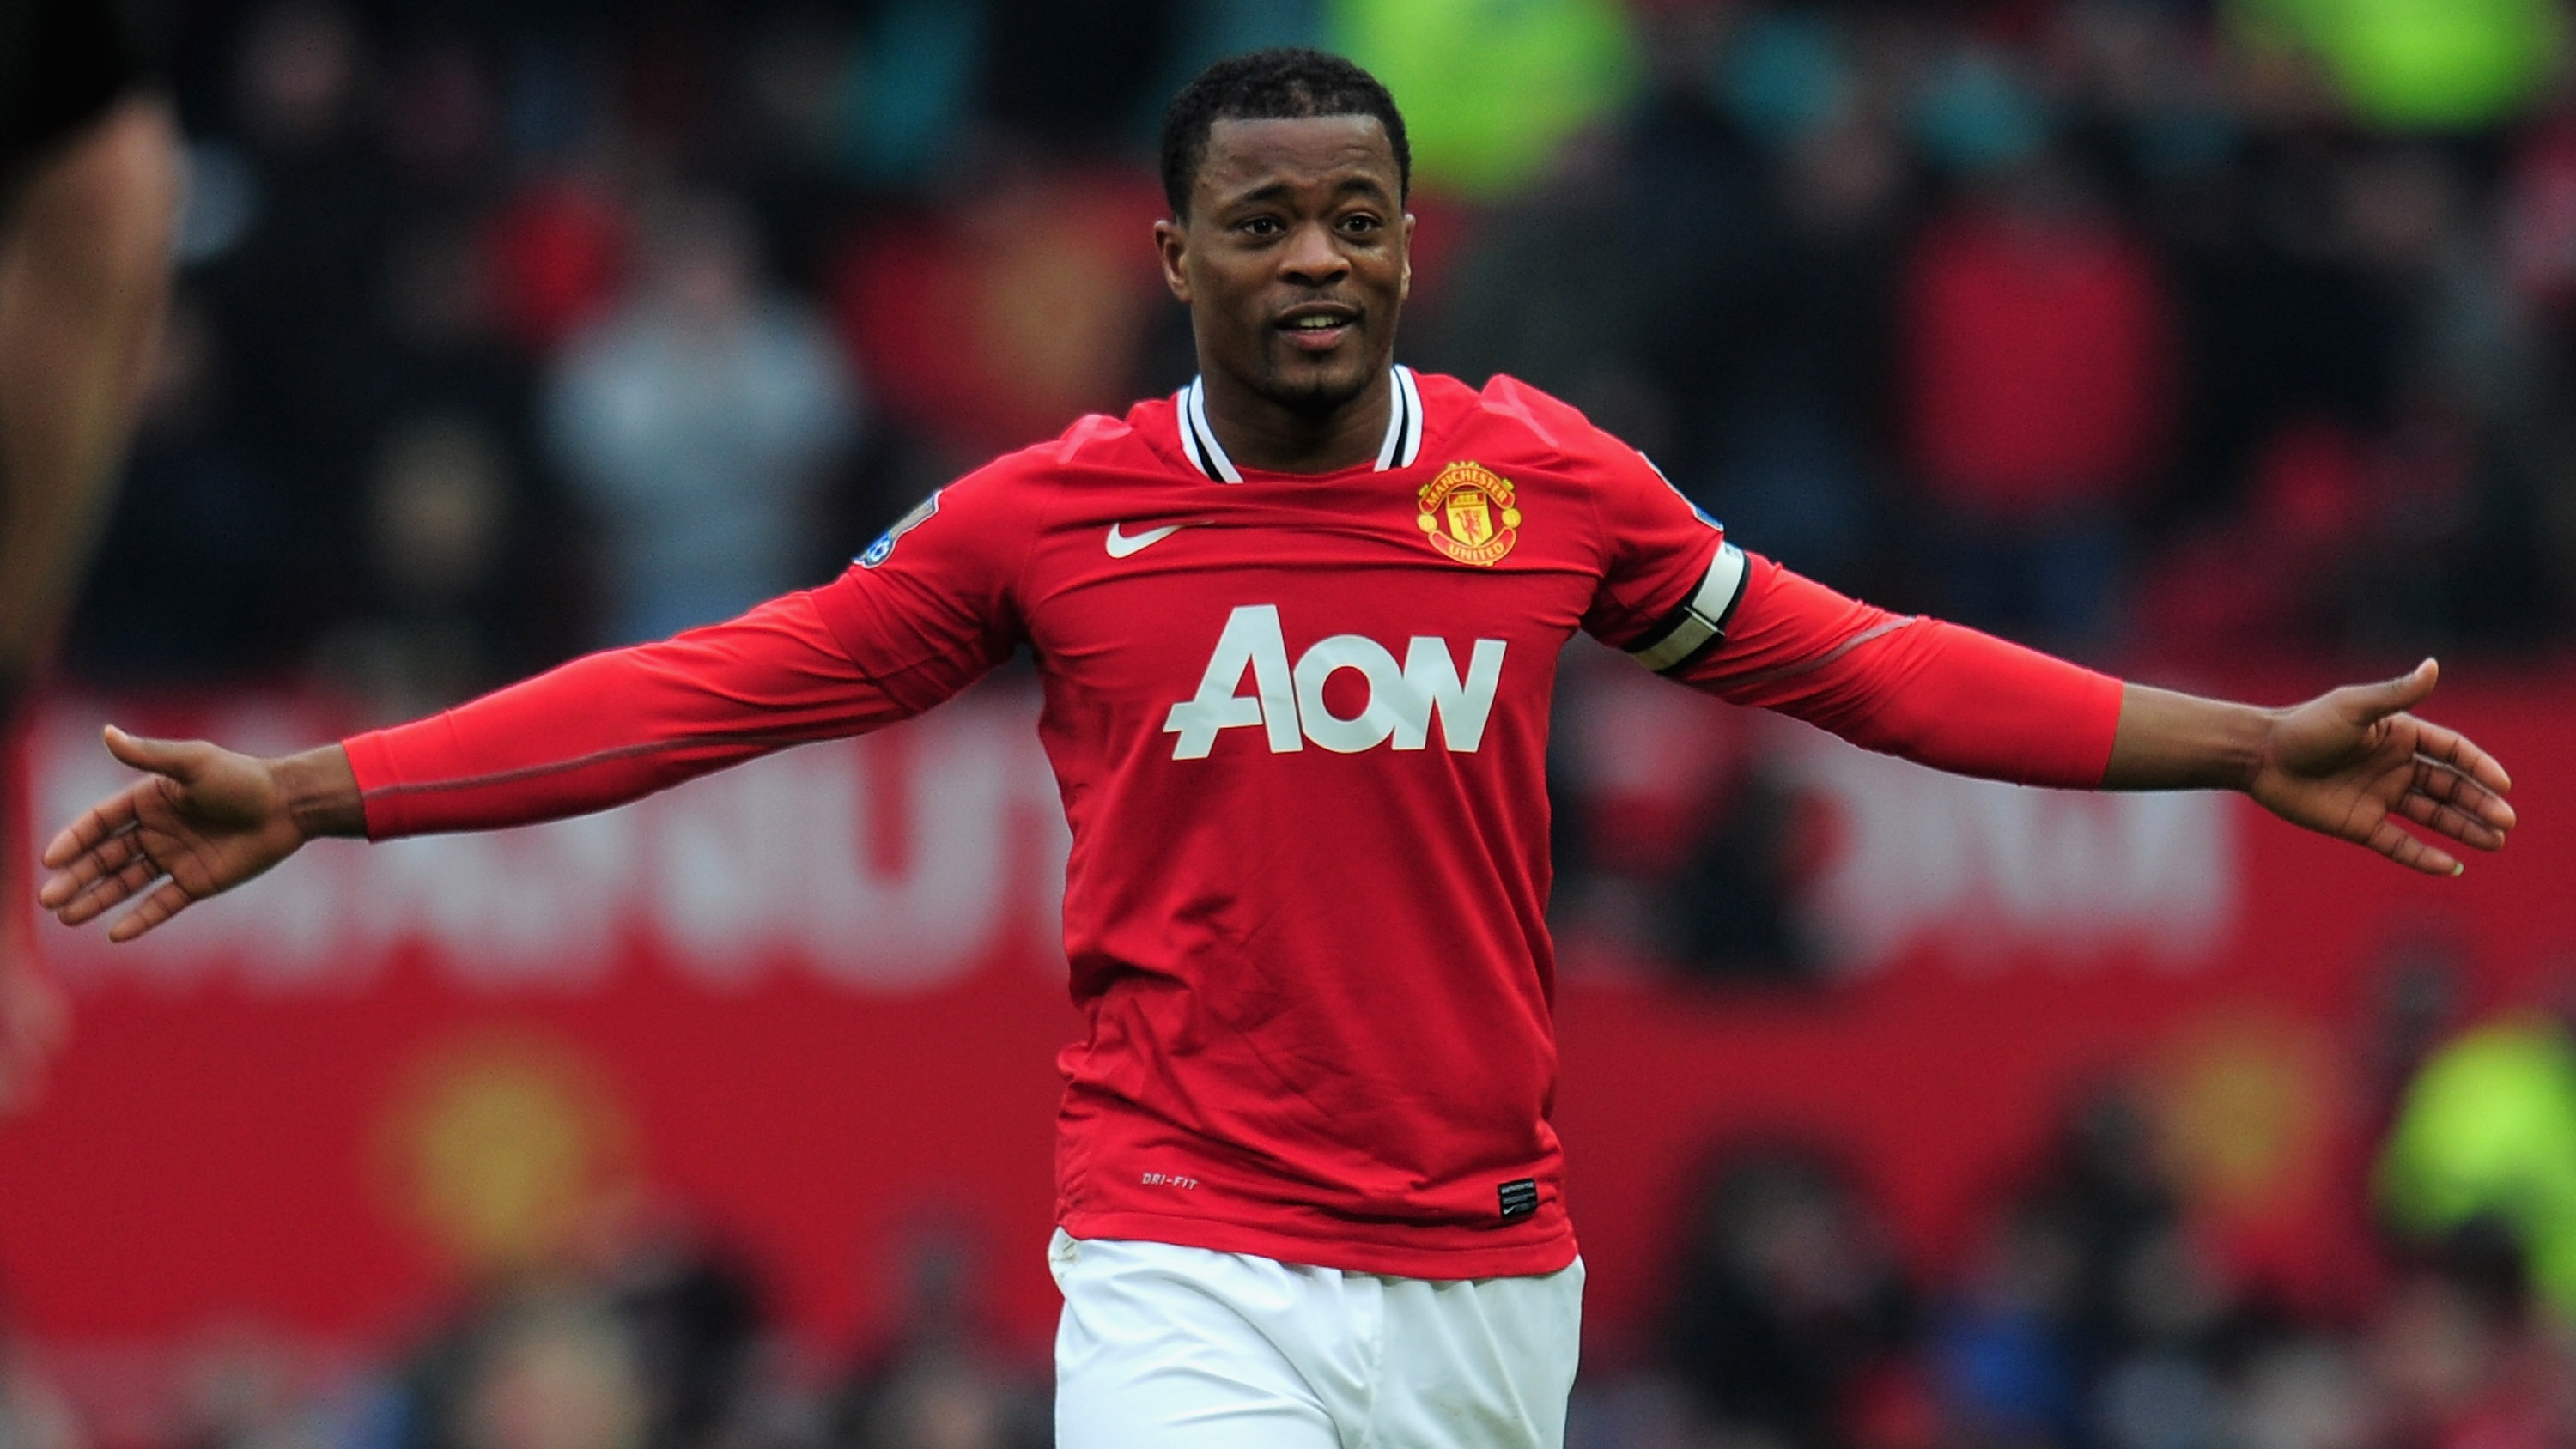 Evra: I'm not scared to say that I've begged for money